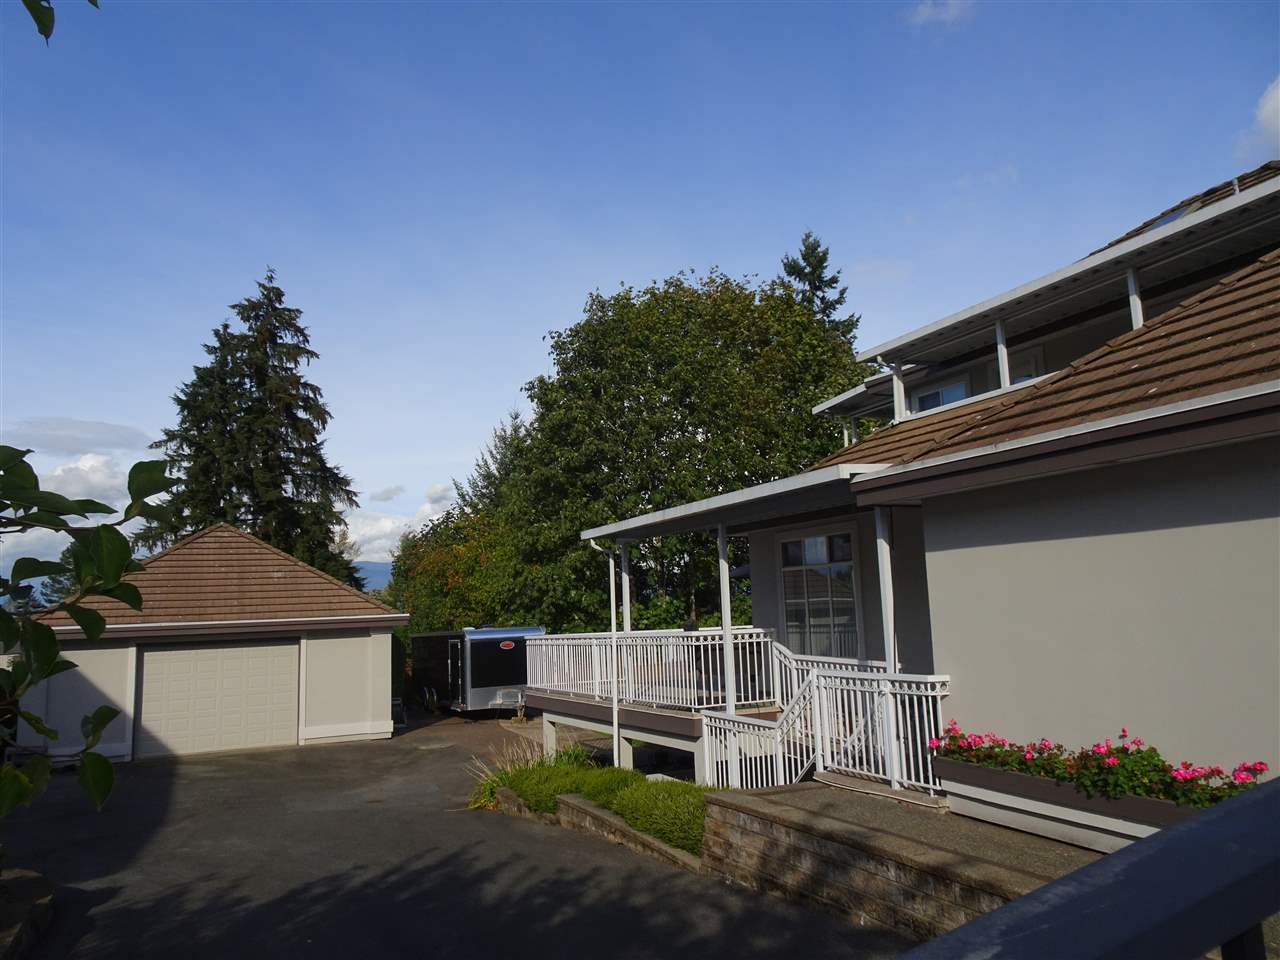 17511 101 AVENUE - Fraser Heights House/Single Family for sale, 5 Bedrooms (R2527043) - #40